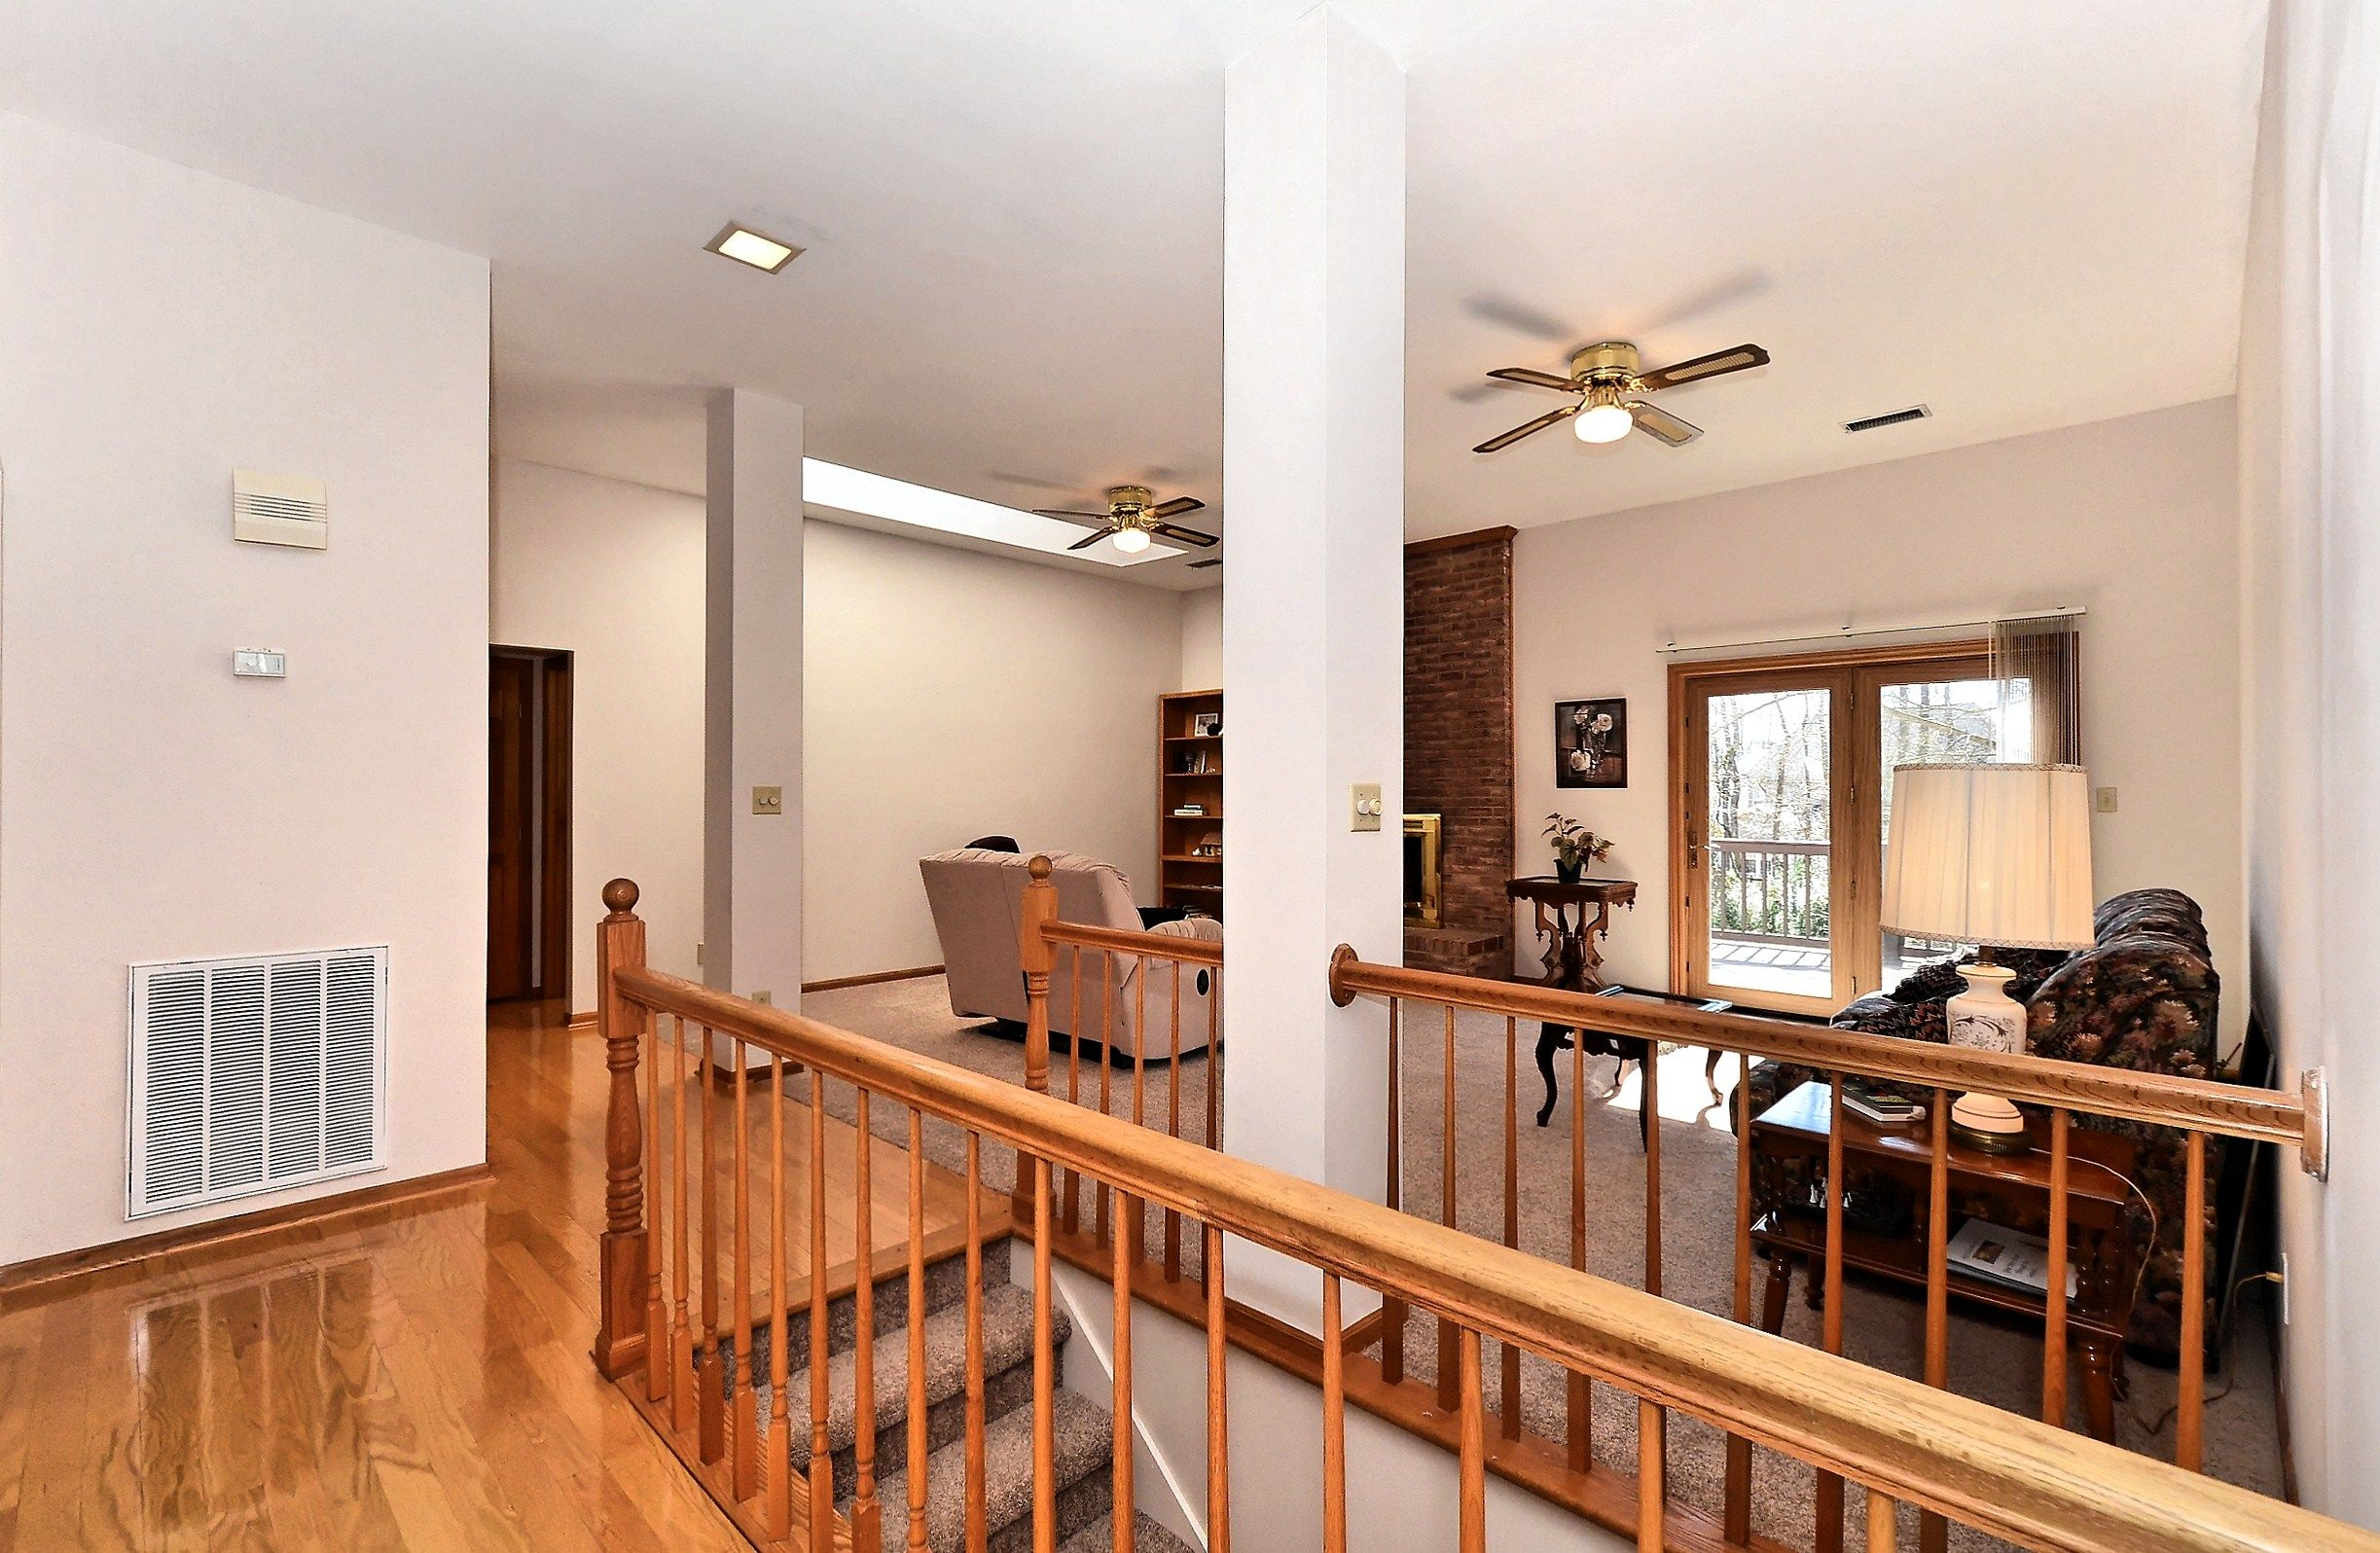 Seems Simplest Stairs In Living Room Home Stairs Design Stairs   Basement Stairs In Kitchen   Ranch   Both Side   Dining Room   Open Concept   Galley